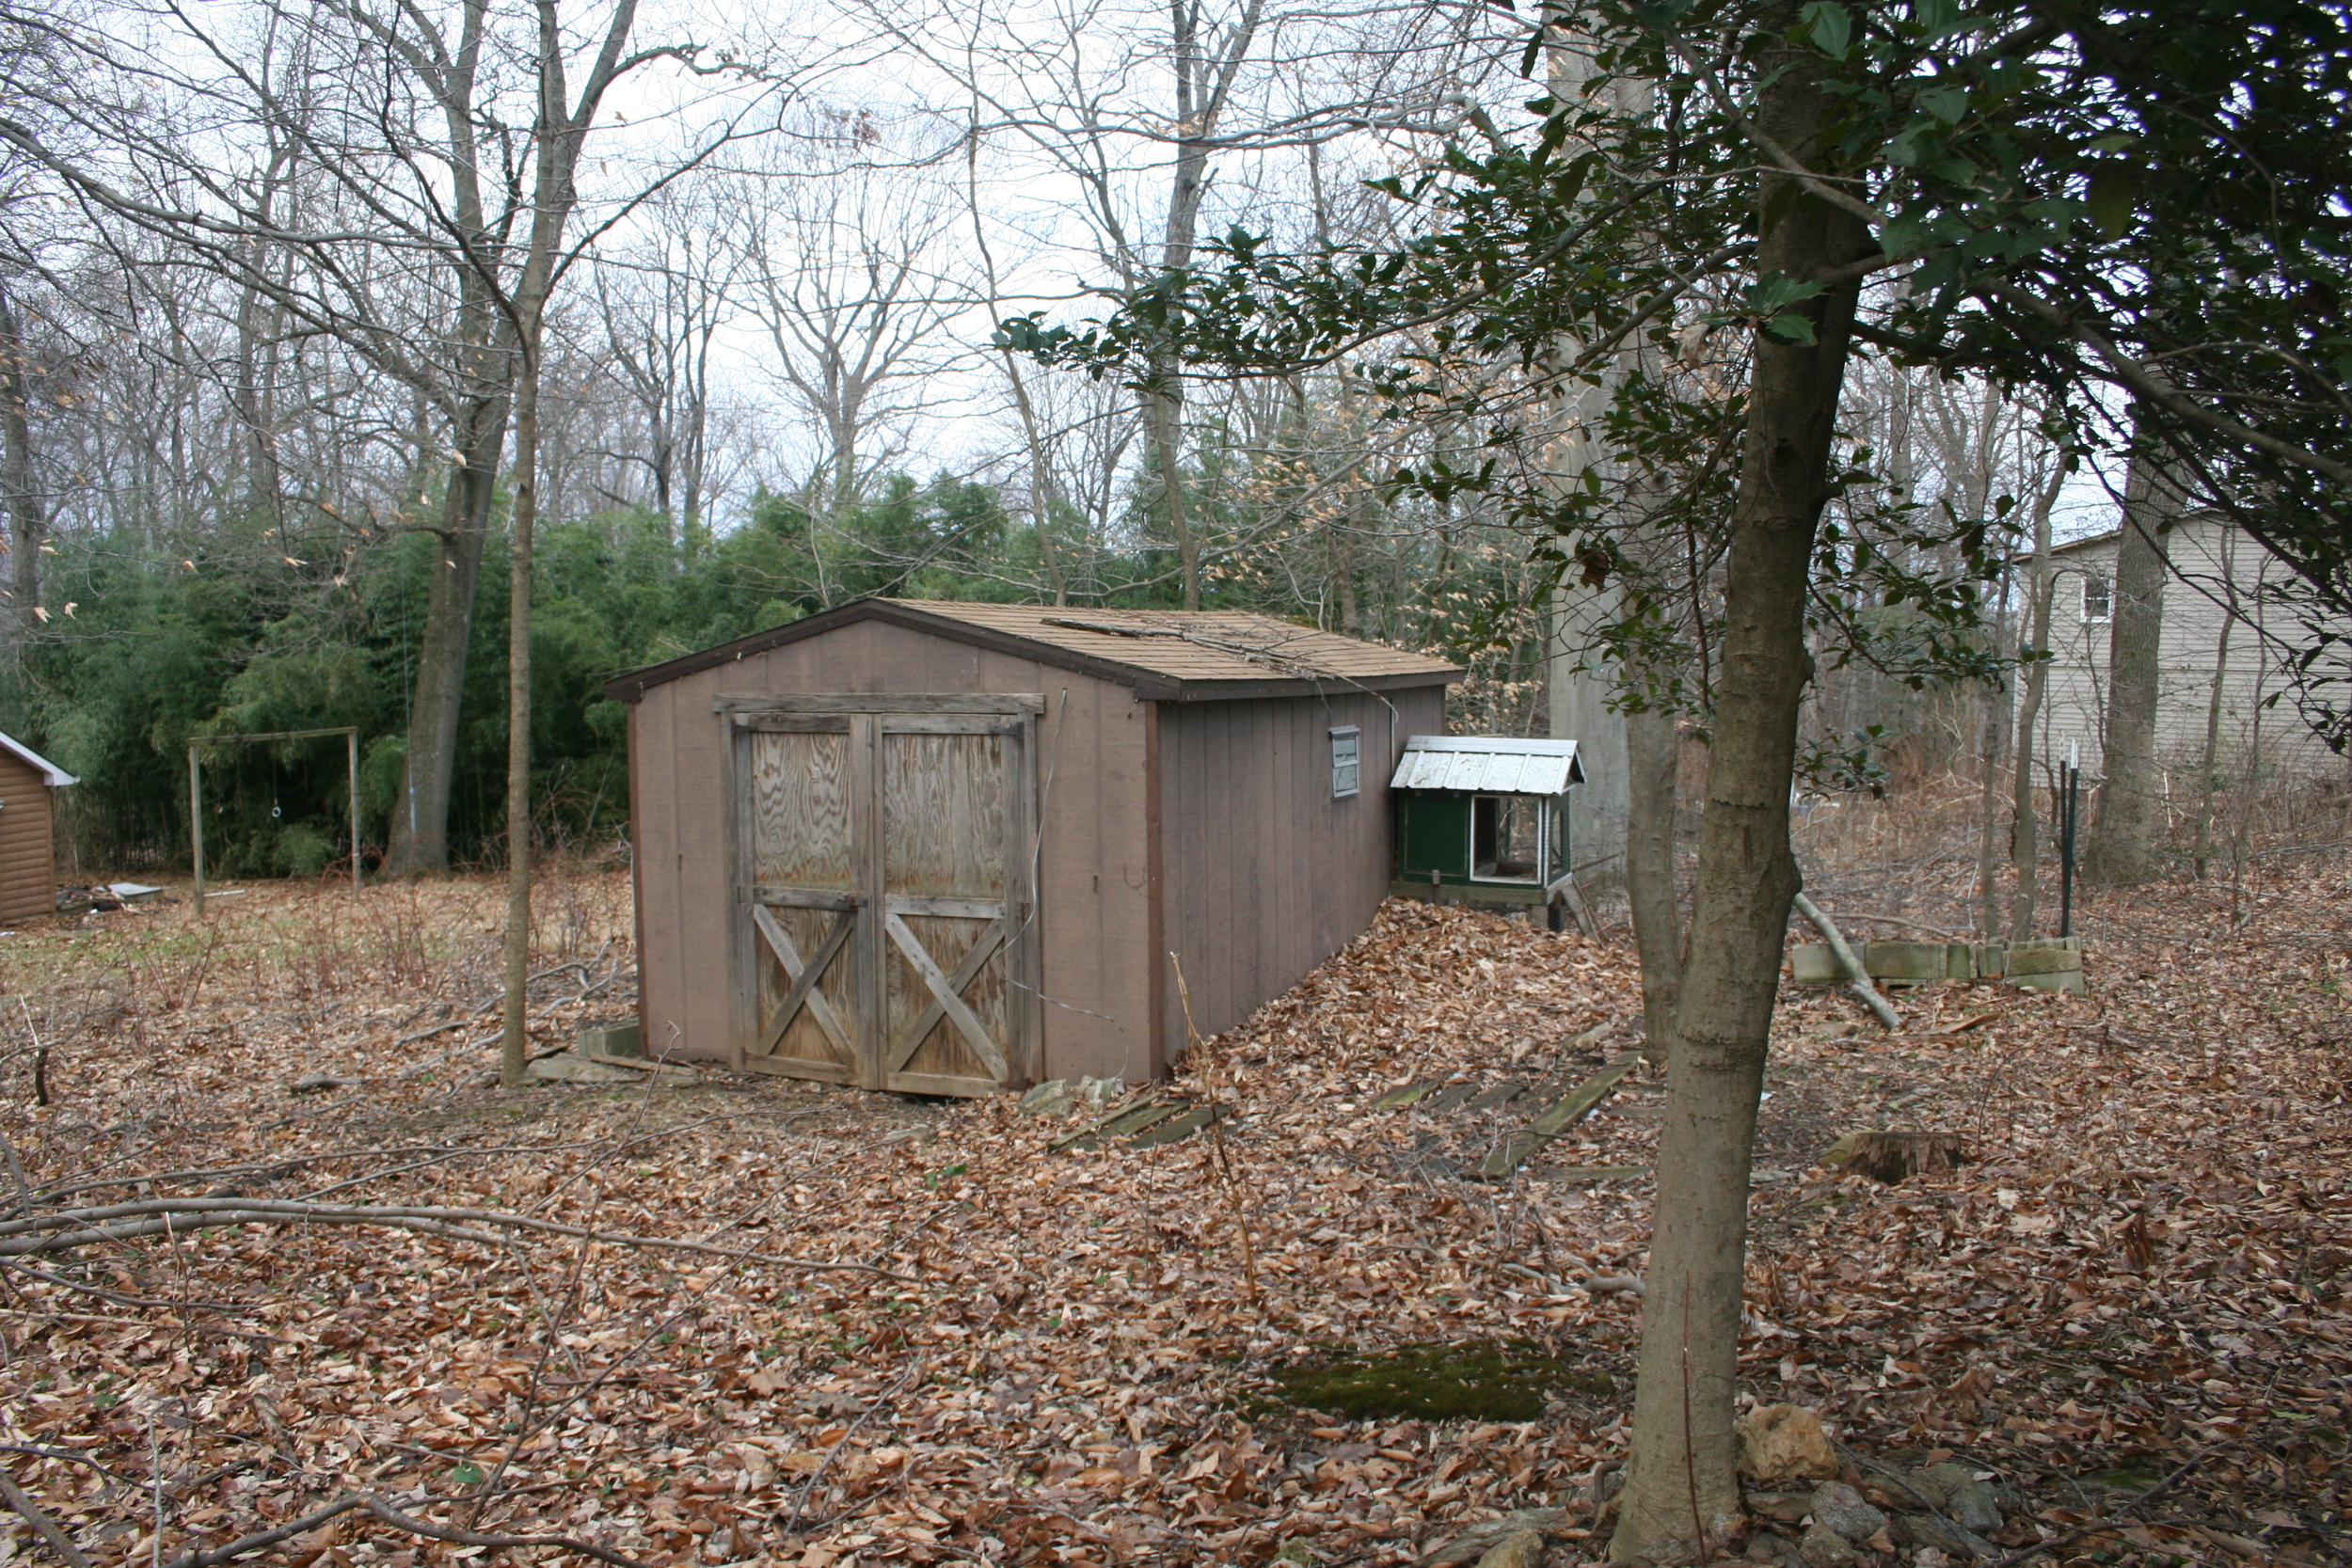 Another shed on the property.